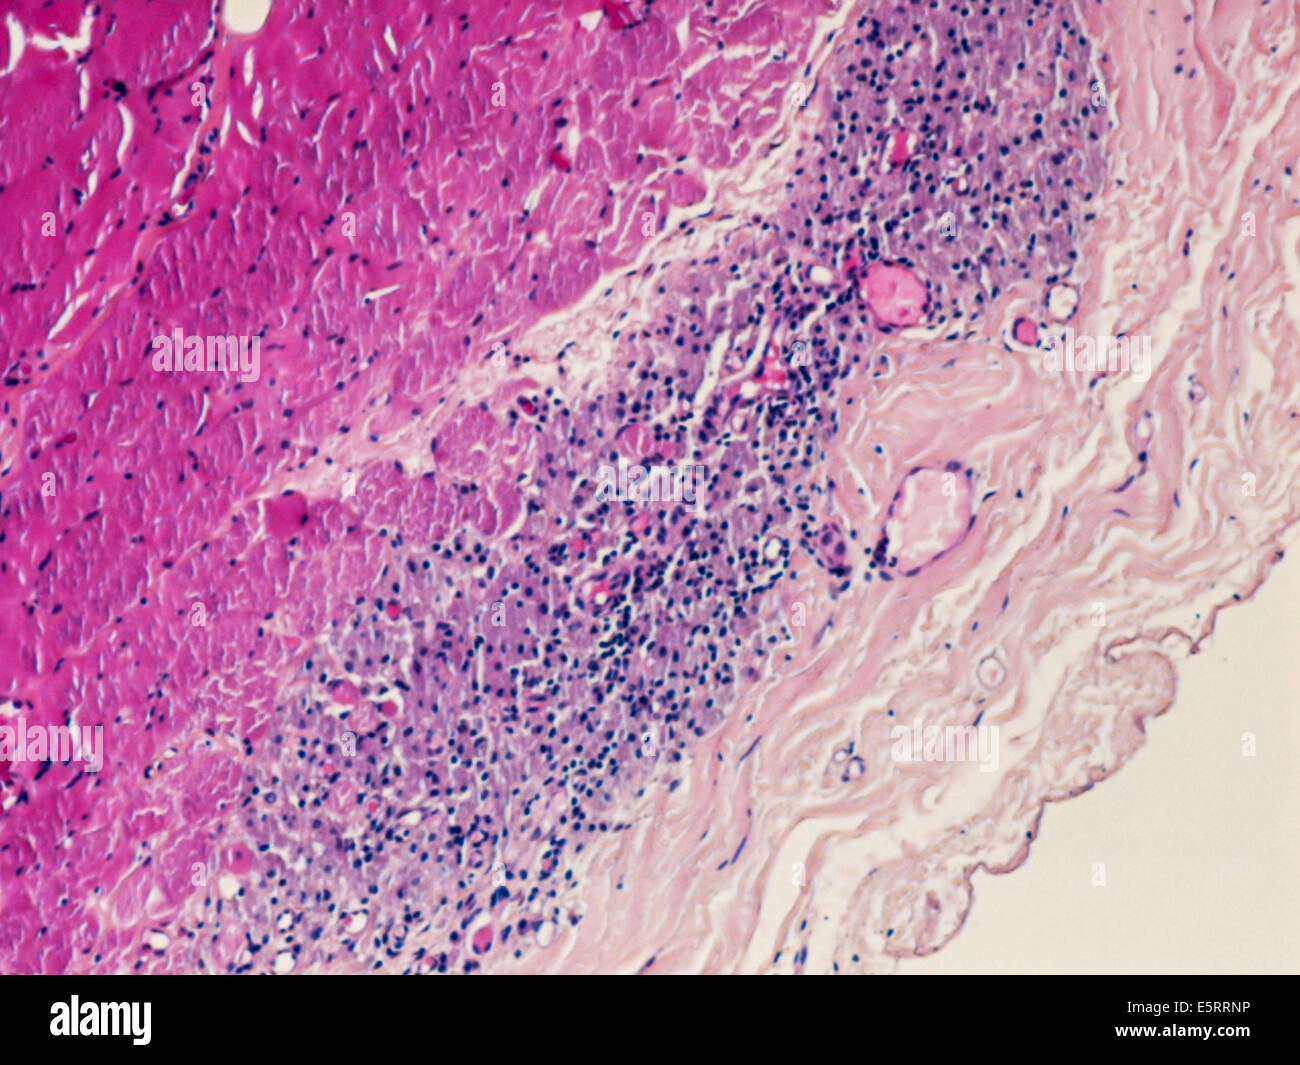 Light micrograph of a section through tissue from a deltoid muscle biopsy showing a macrophagic myofasciitis post-vaccination. Stock Photo